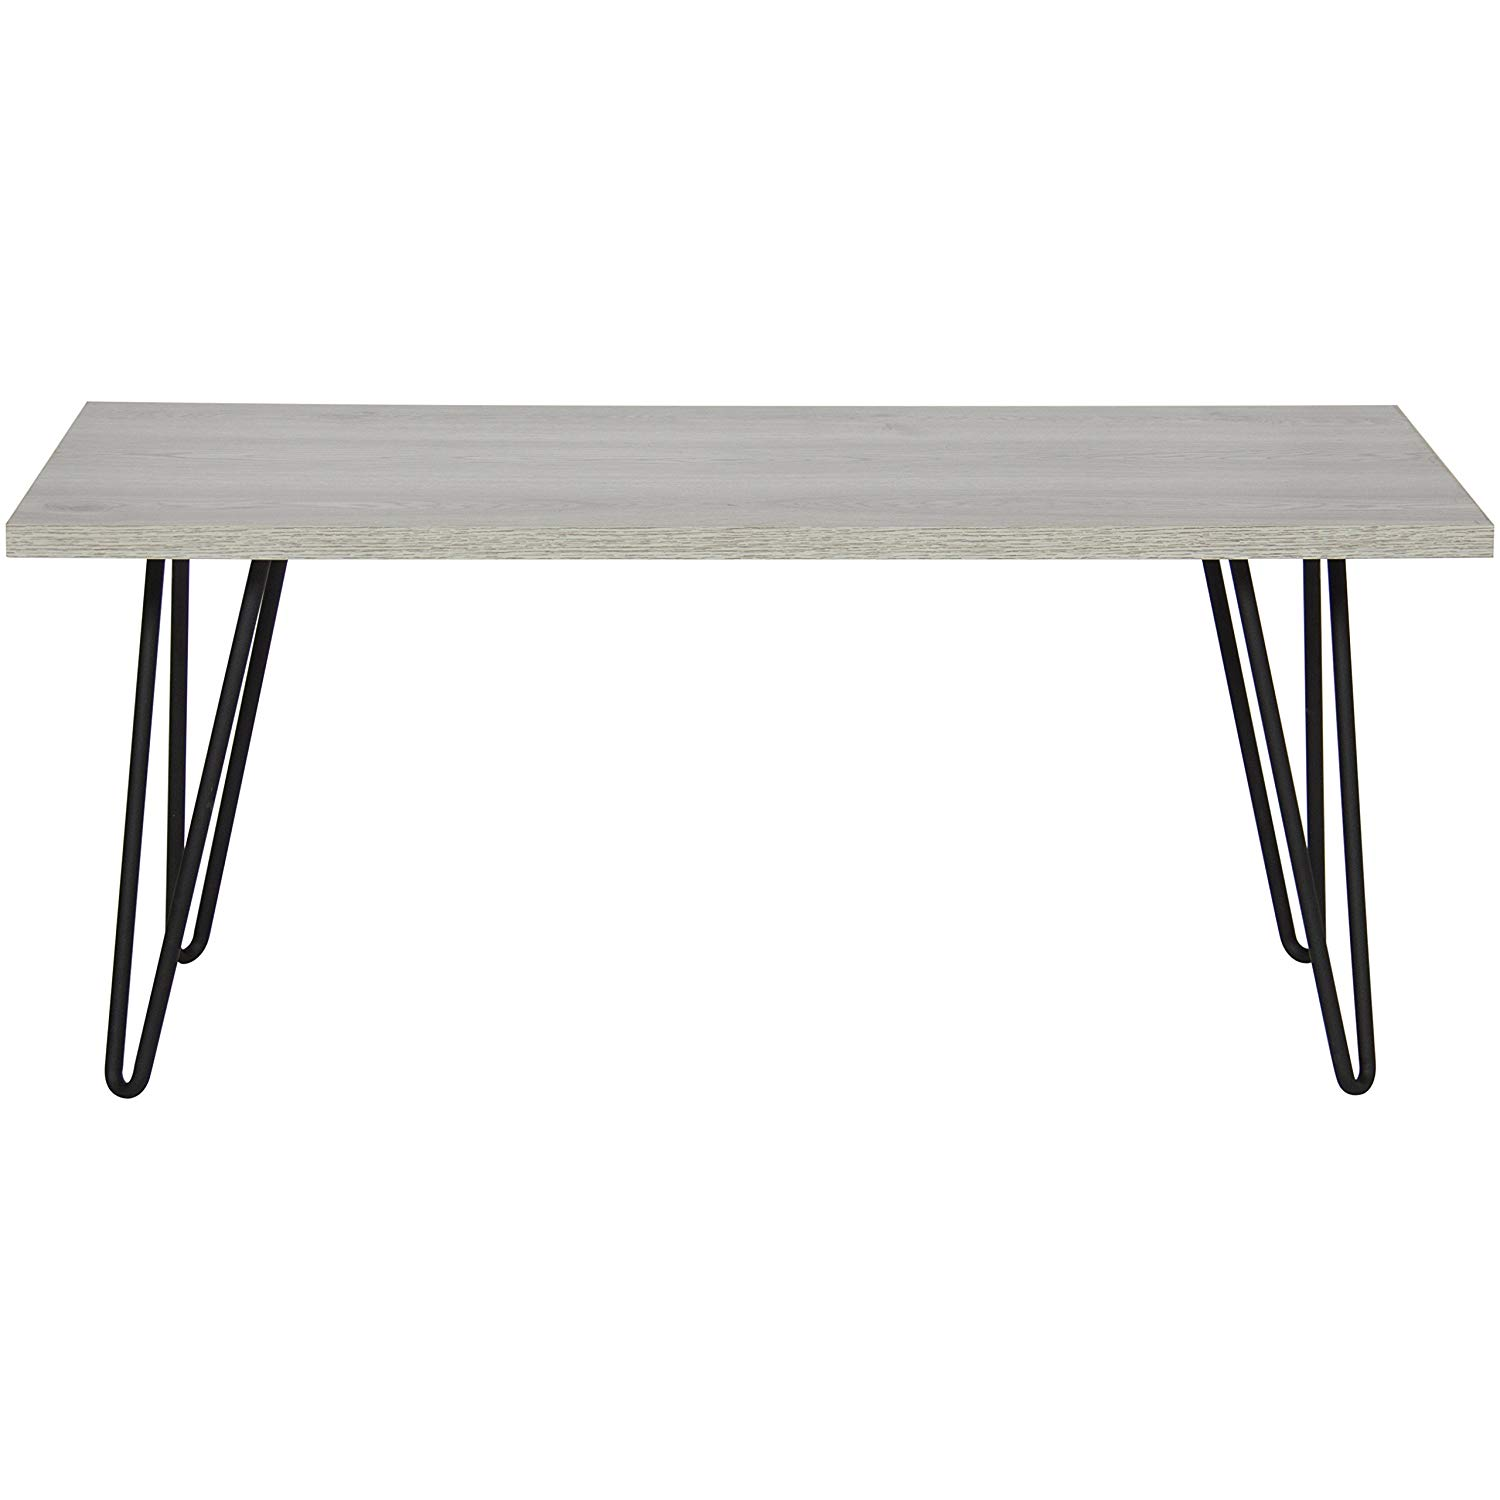 best choice products coffee table metal hairpin legs room essentials accent home kitchen small black side with drawers owings target dining buffet pier one imports coupons floor